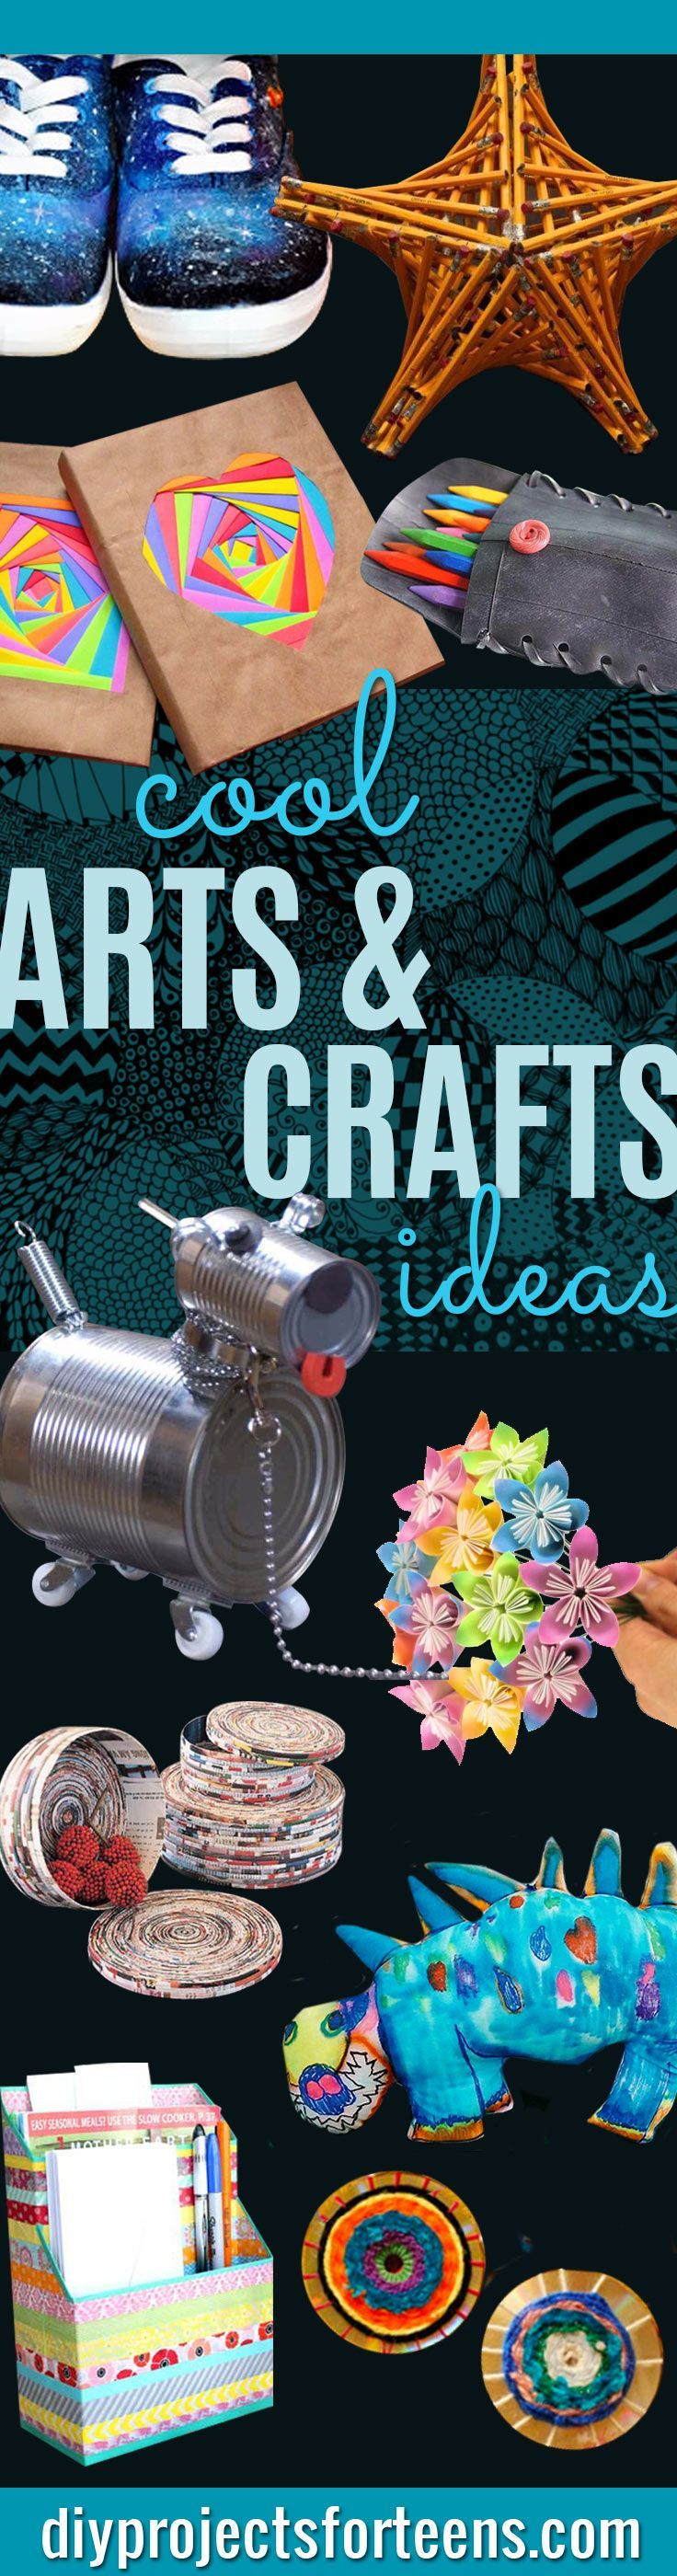 Cool arts and crafts ideas for teens adult fun room for Creative art projects for adults